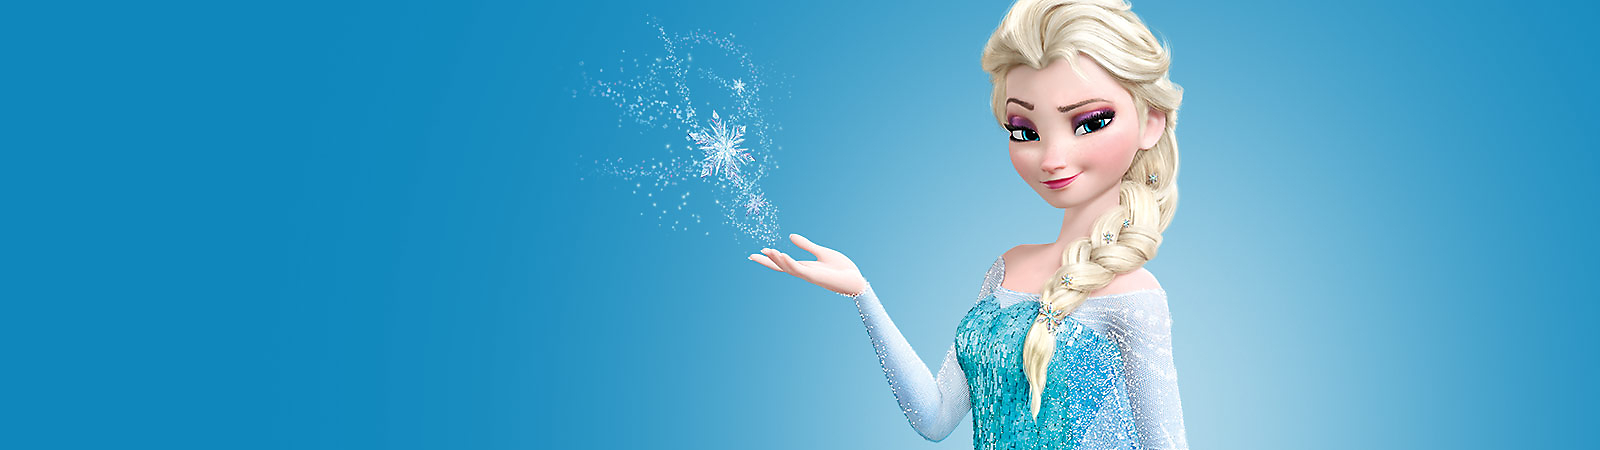 Background image of Elsa